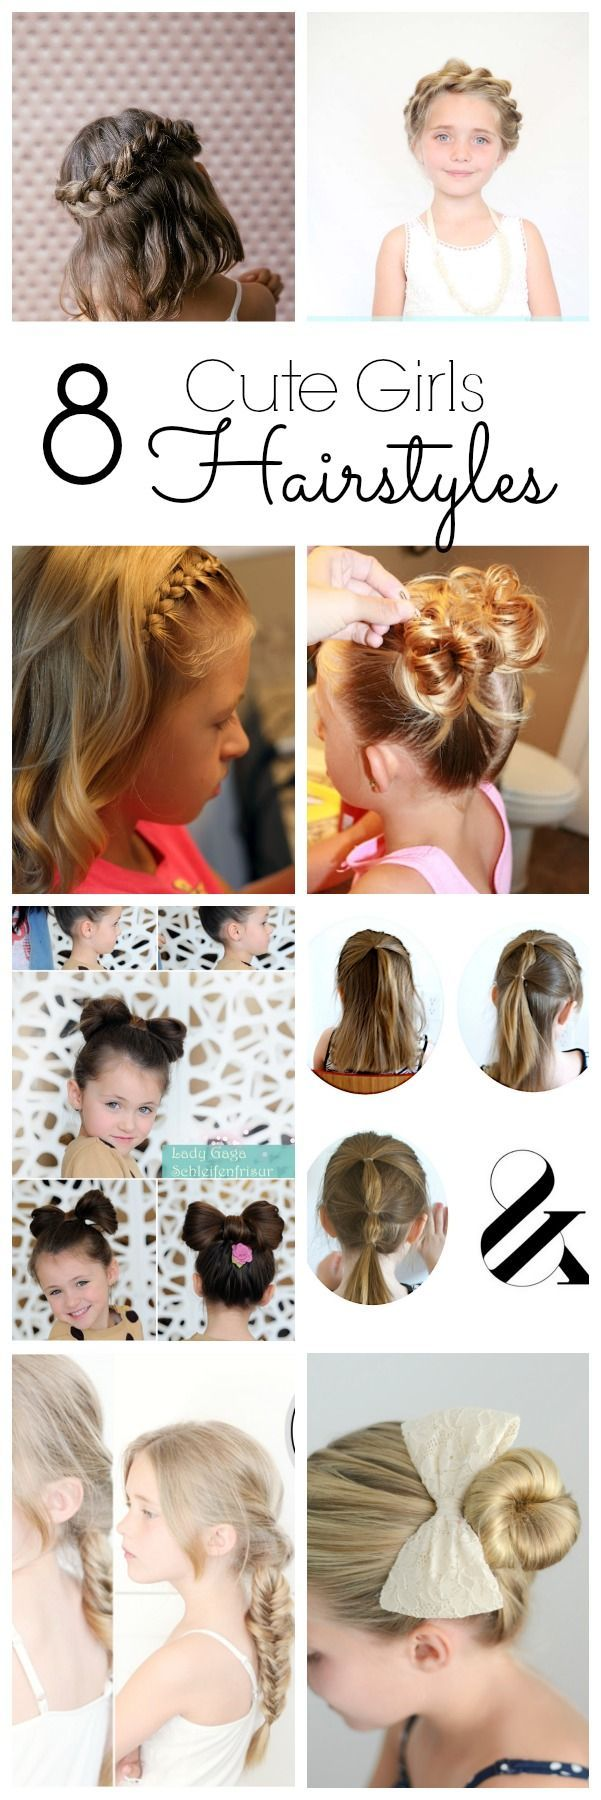 Hair tutorials u ideas super cute girlus hairstyles these are